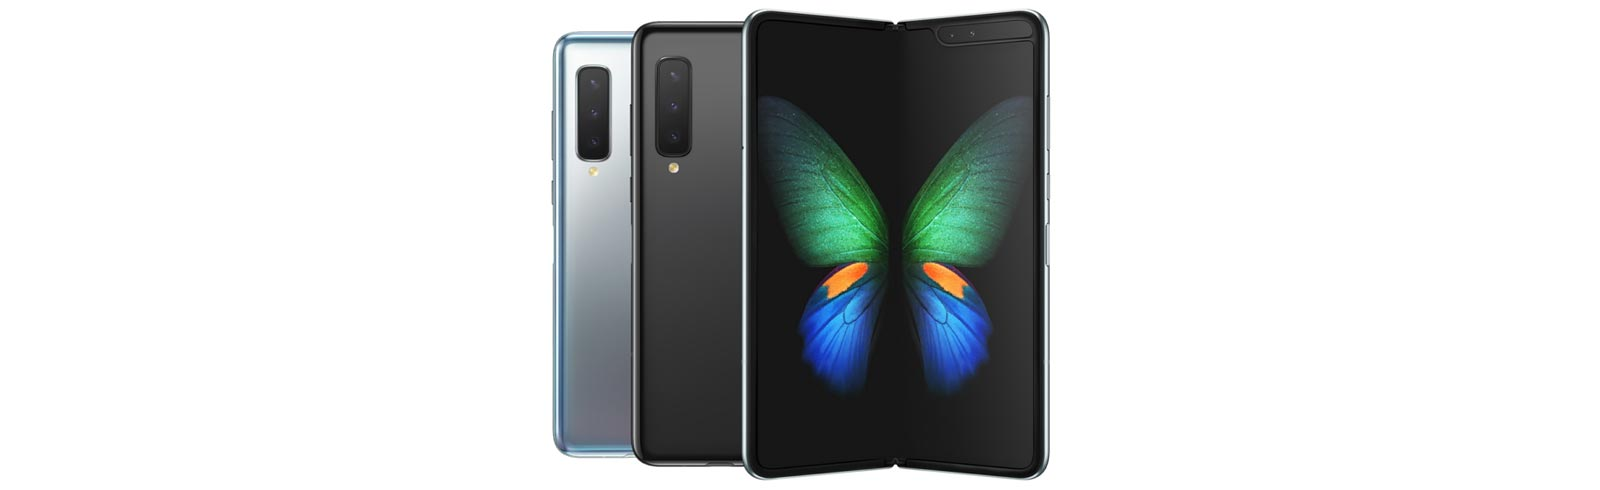 Samsung launches the Galaxy Fold 5G in the UK via EE